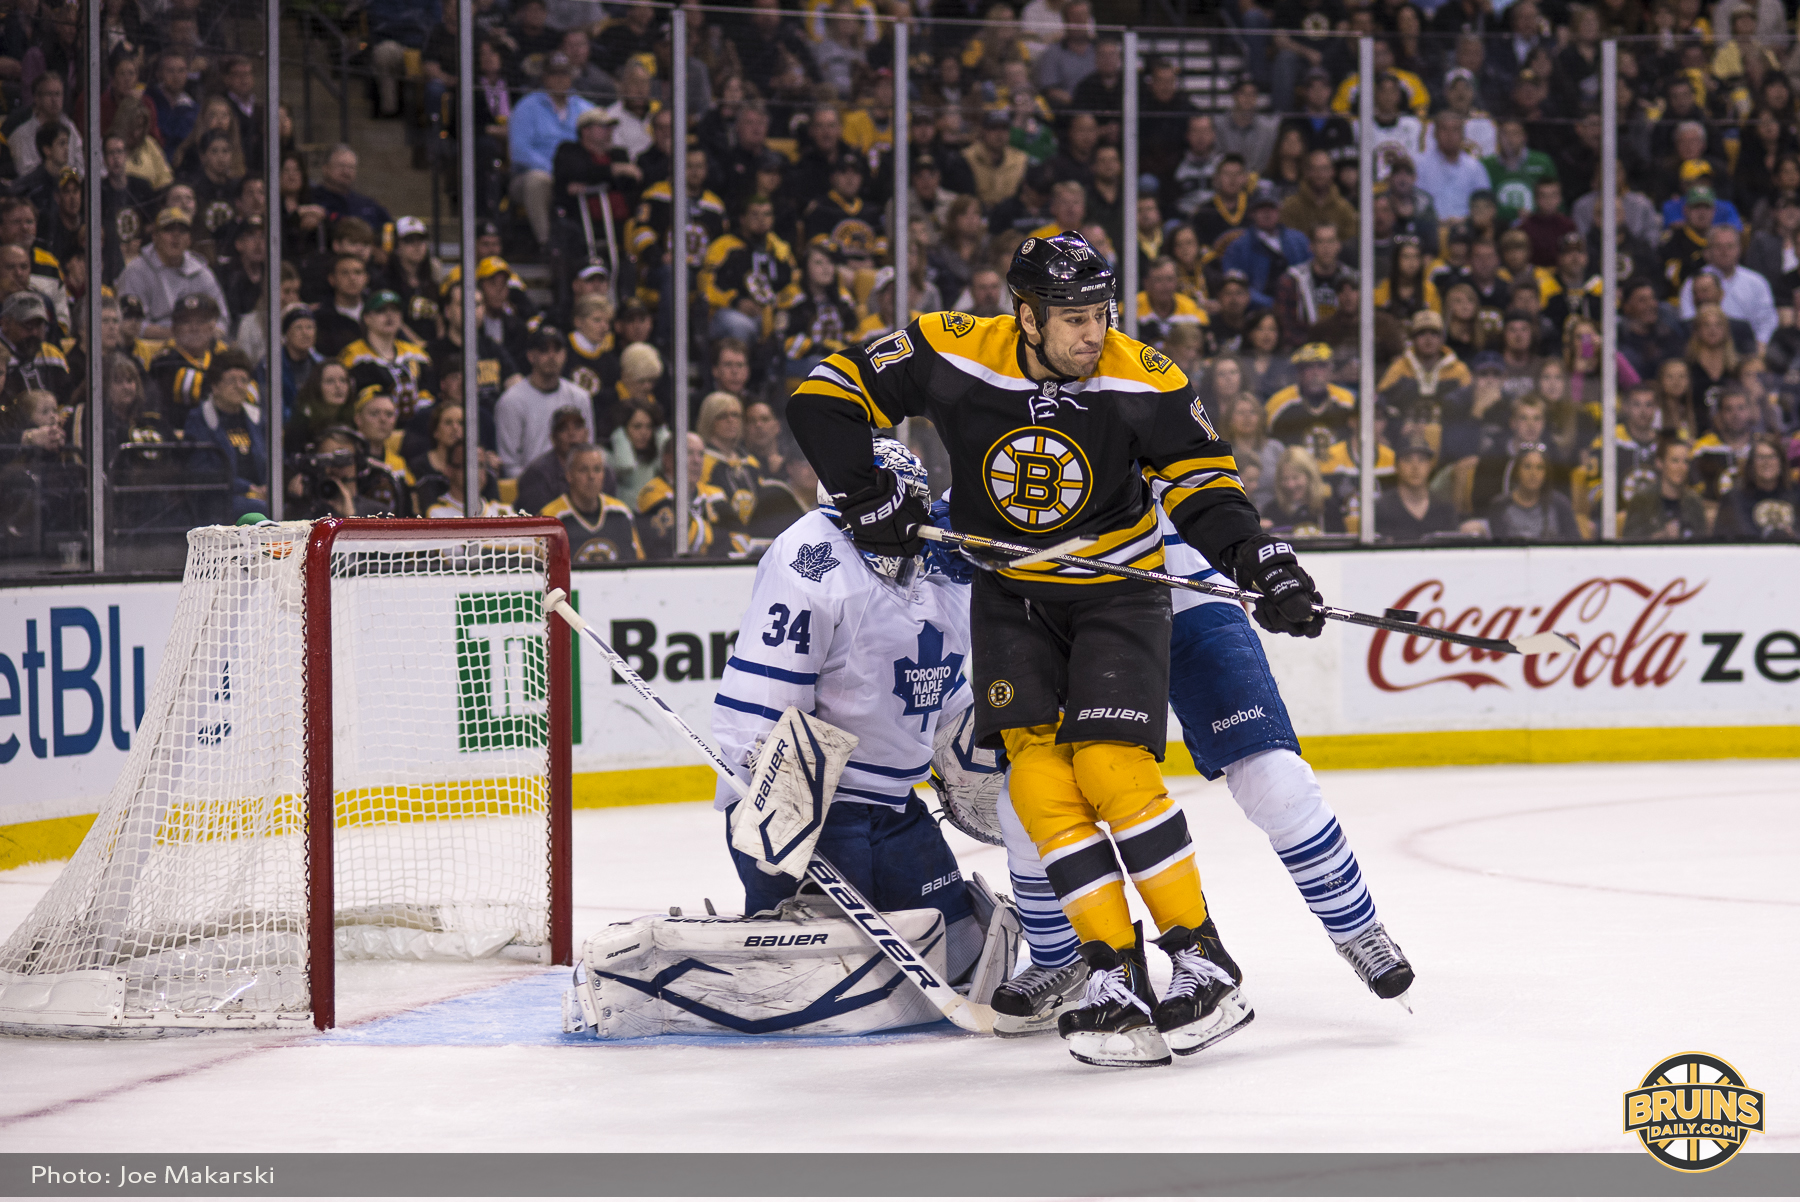 Bruins in familiar territory for Game 6 - Bruins Daily ...